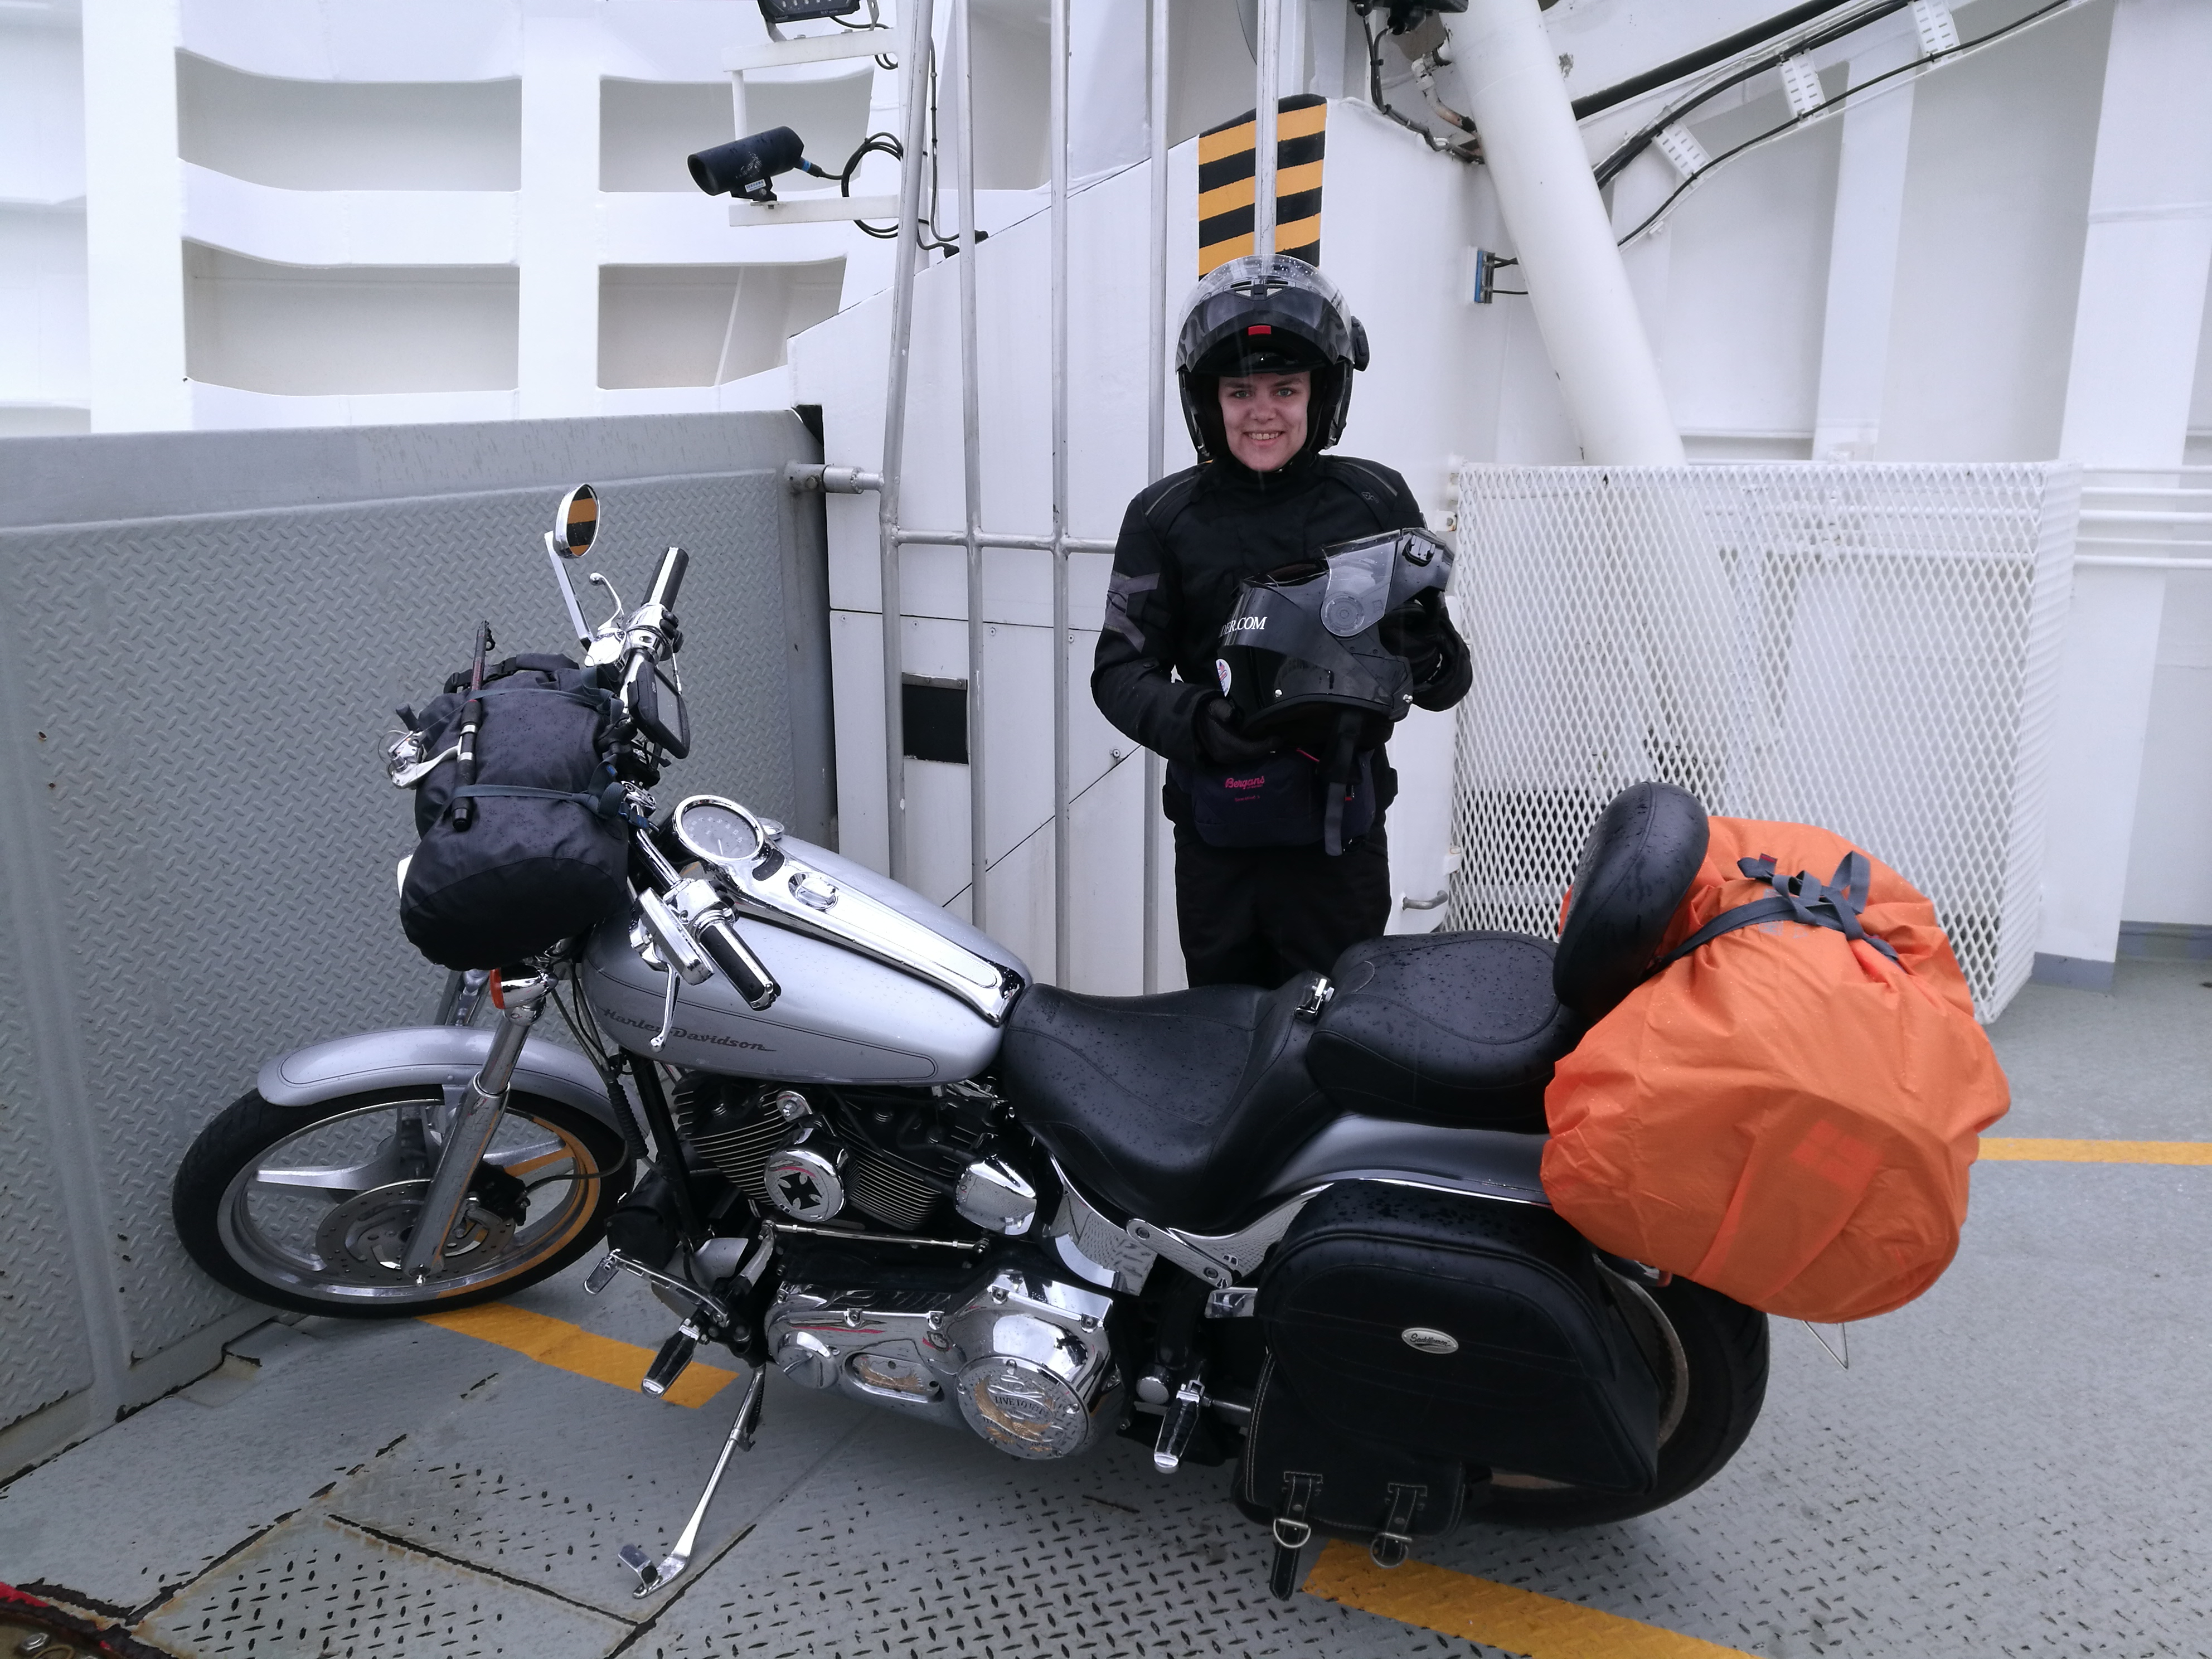 Motorcycle hits semi truck strange accident 31 12 2012 youtube - At Least For A Little While Before We Stopped To Fill The Tank Drove 10 More Minutes And Finally Got On The Ferry Out Of Town Now The Real Driving Was